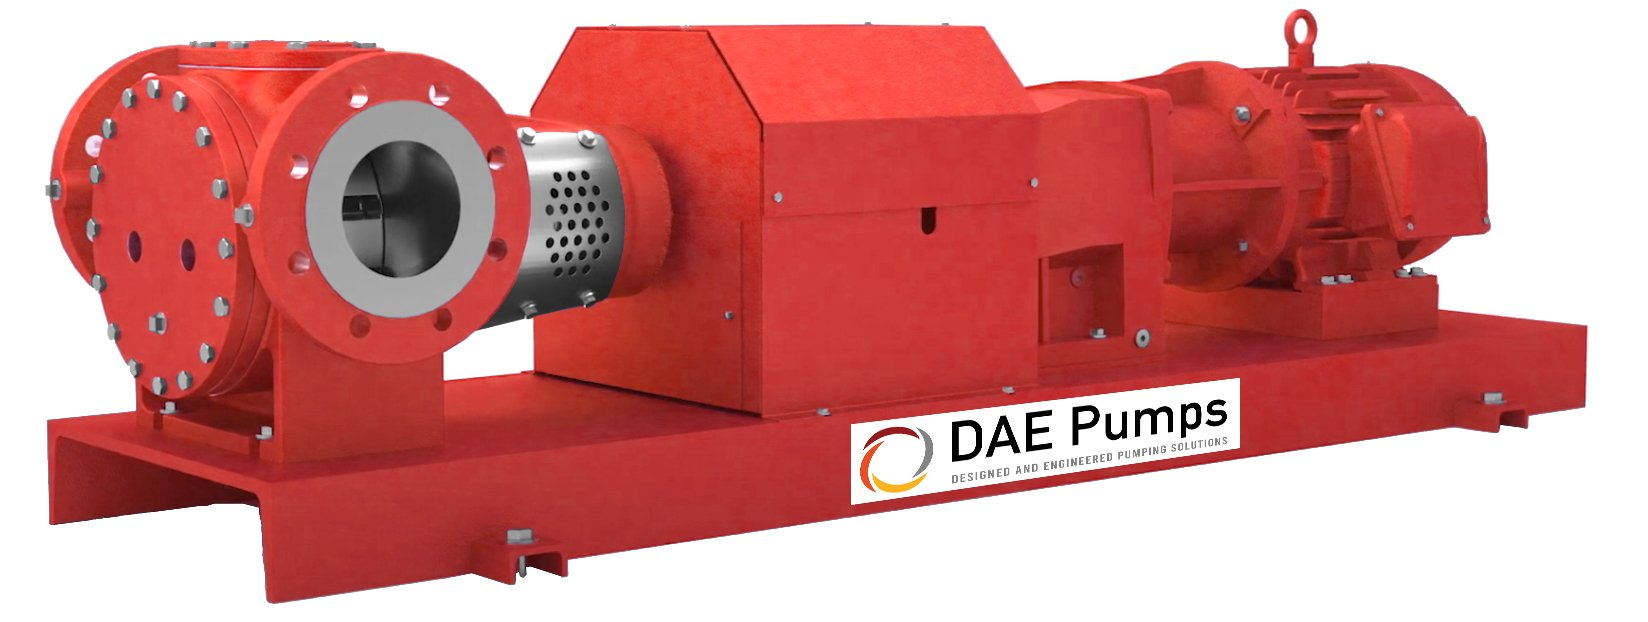 DAE Pumps Tulare Gear Pumps